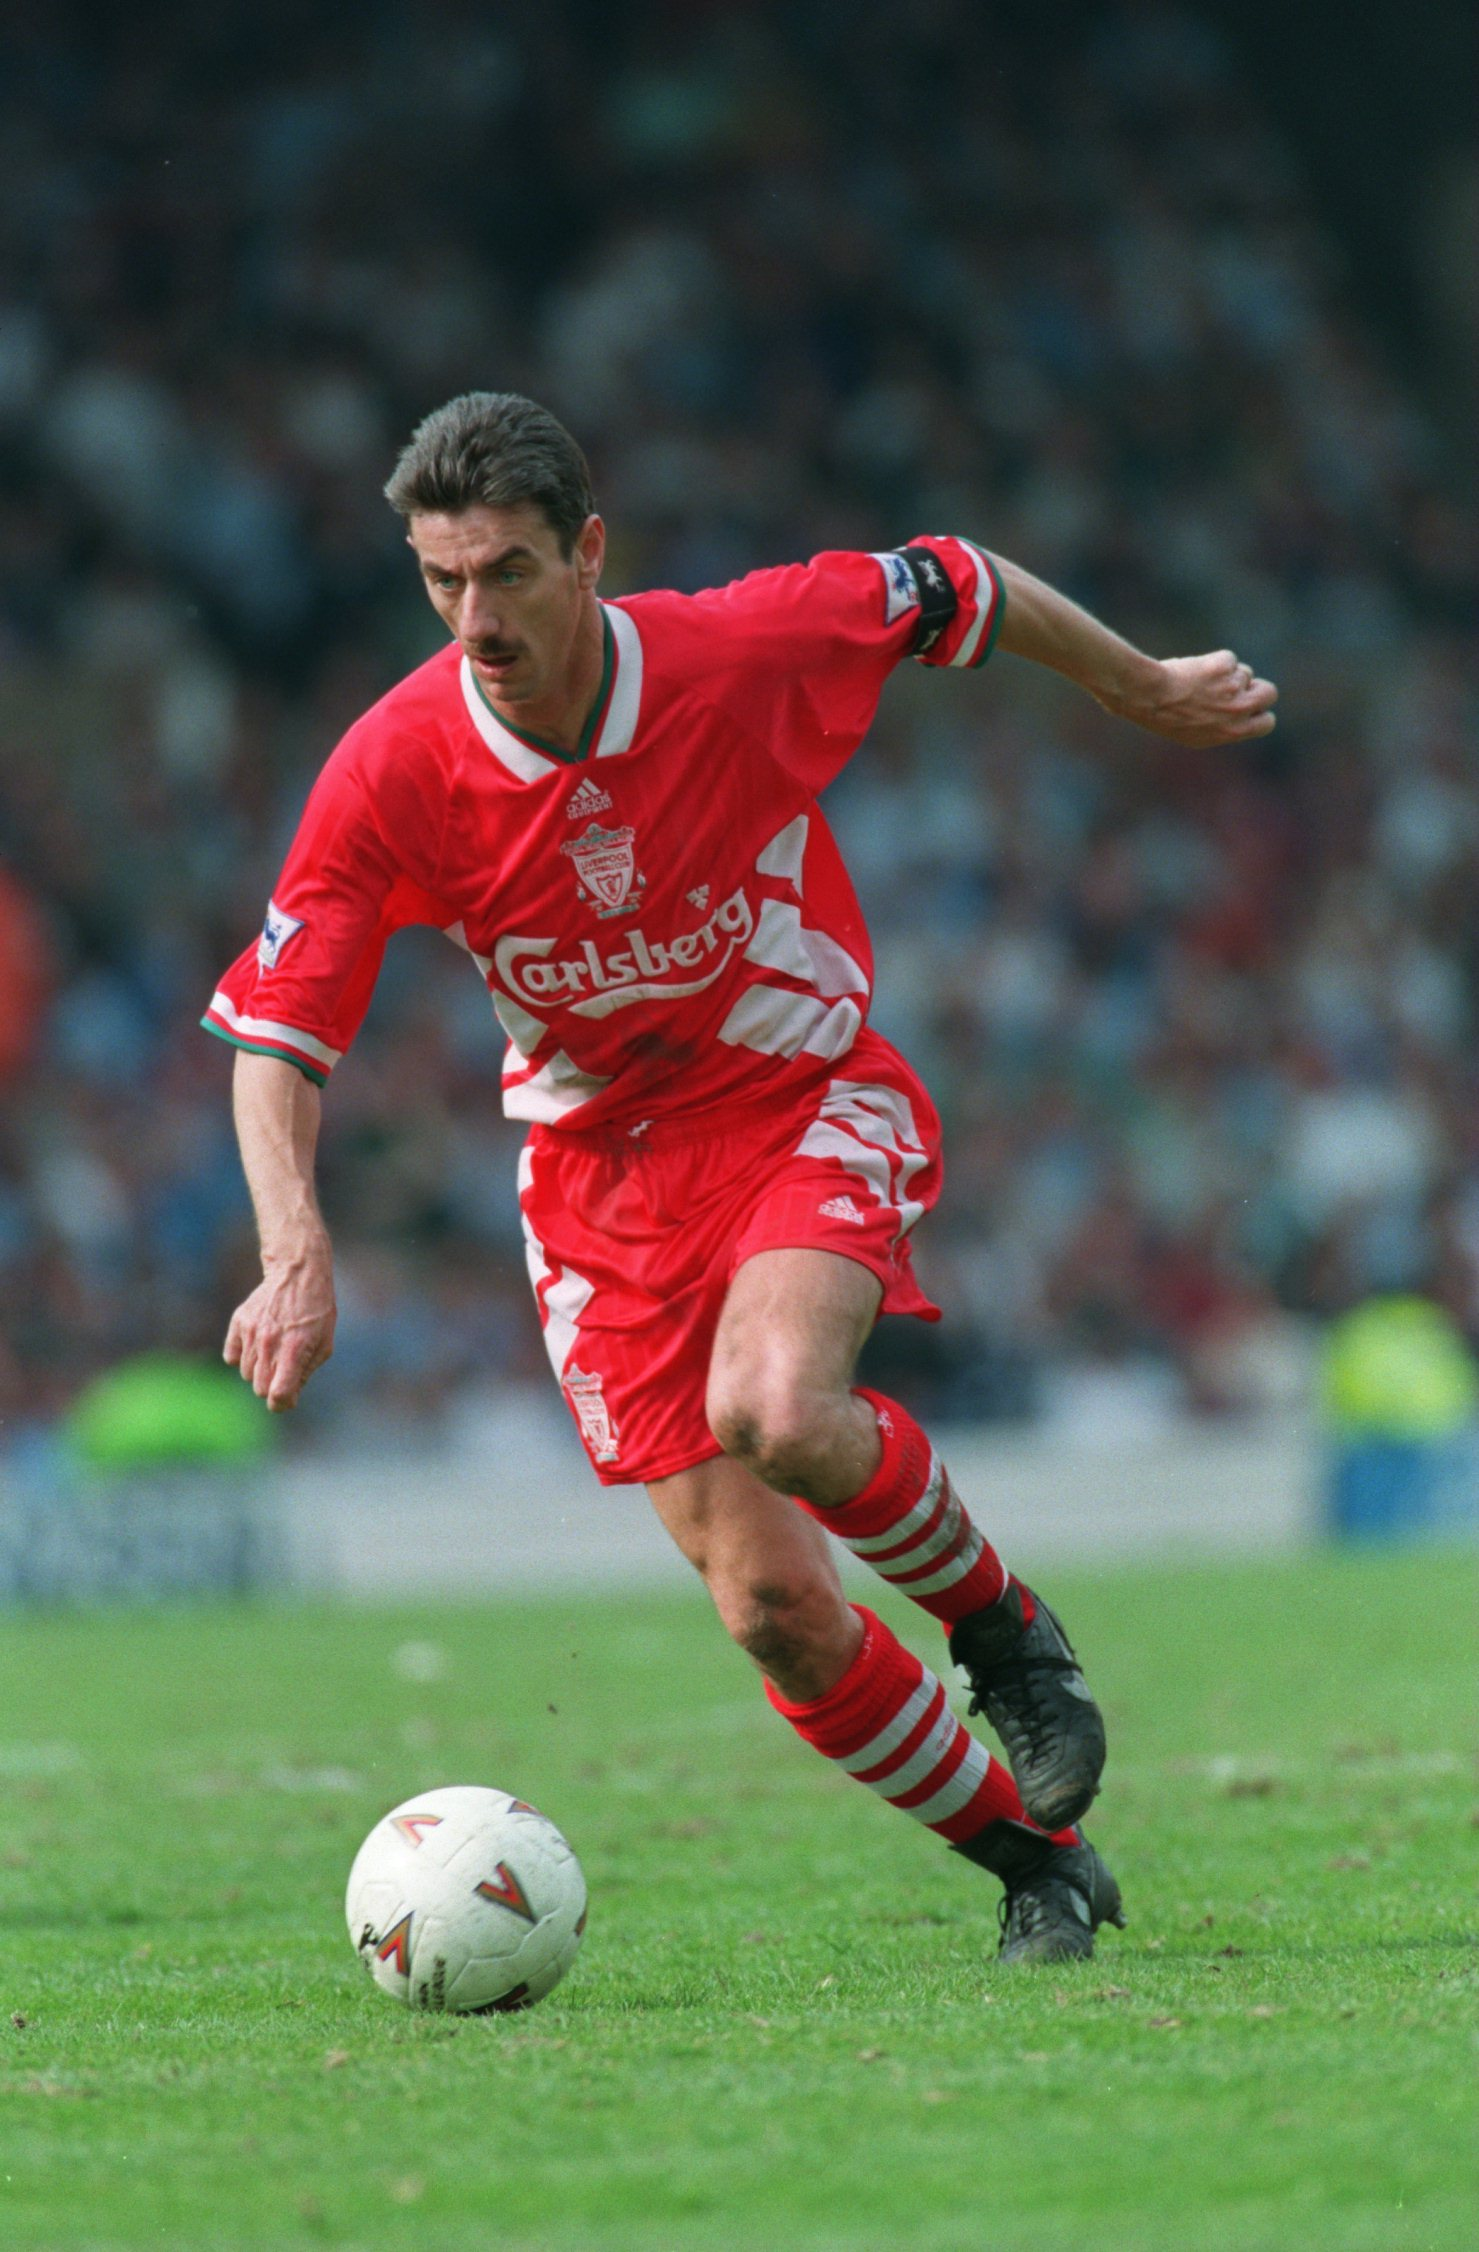 e76ba05fd 14 APR 1995  IAN RUSH OF LIVERPOOL IN ACTION DURING A PREMIERSHIP MATCH  AGAINST MANCHESTER